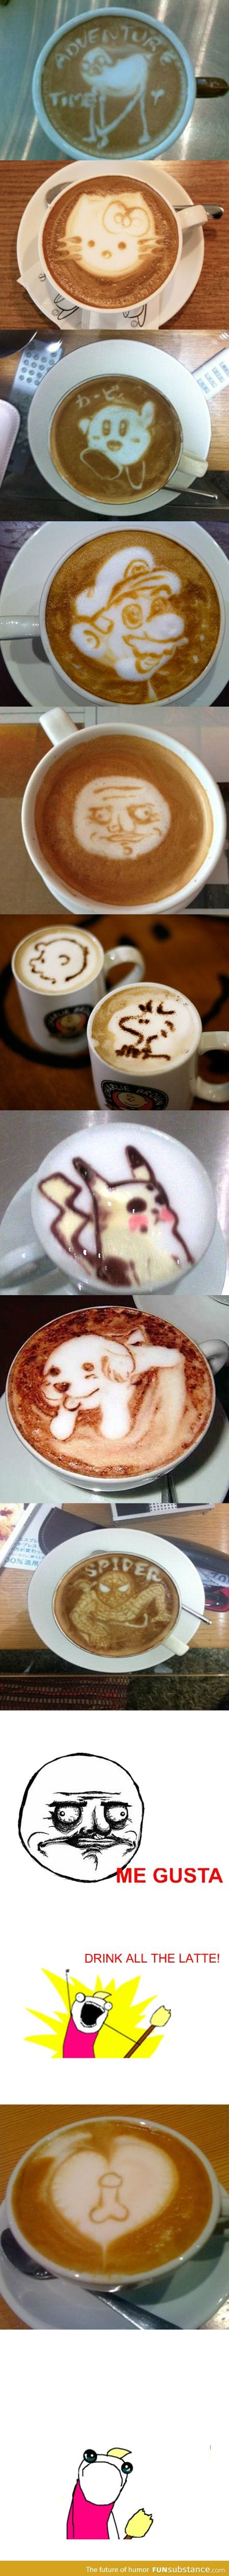 Some Amazing Latte Art